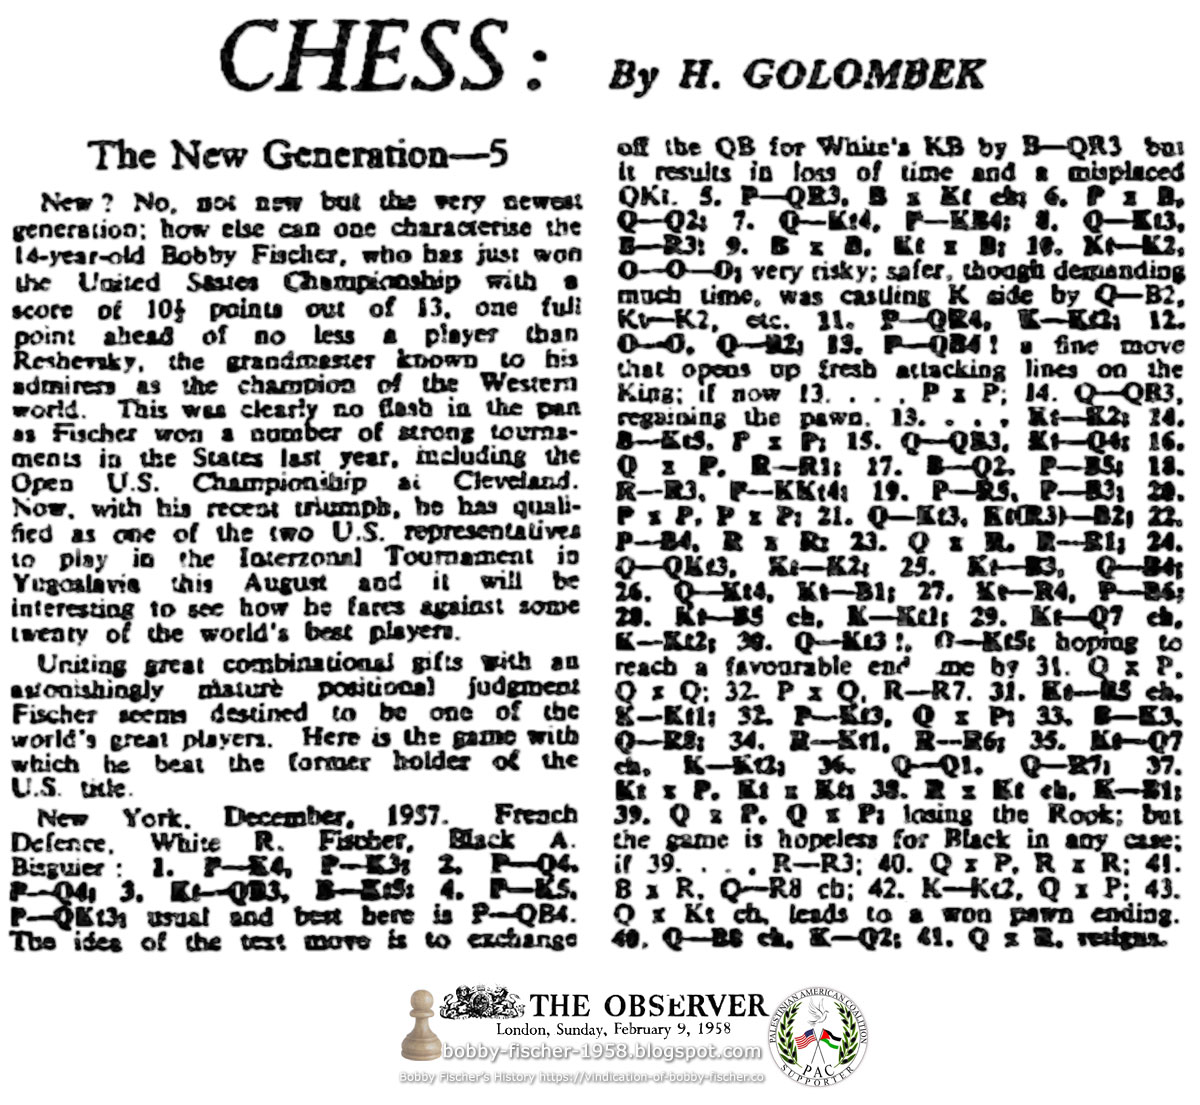 Chess: The New Generation